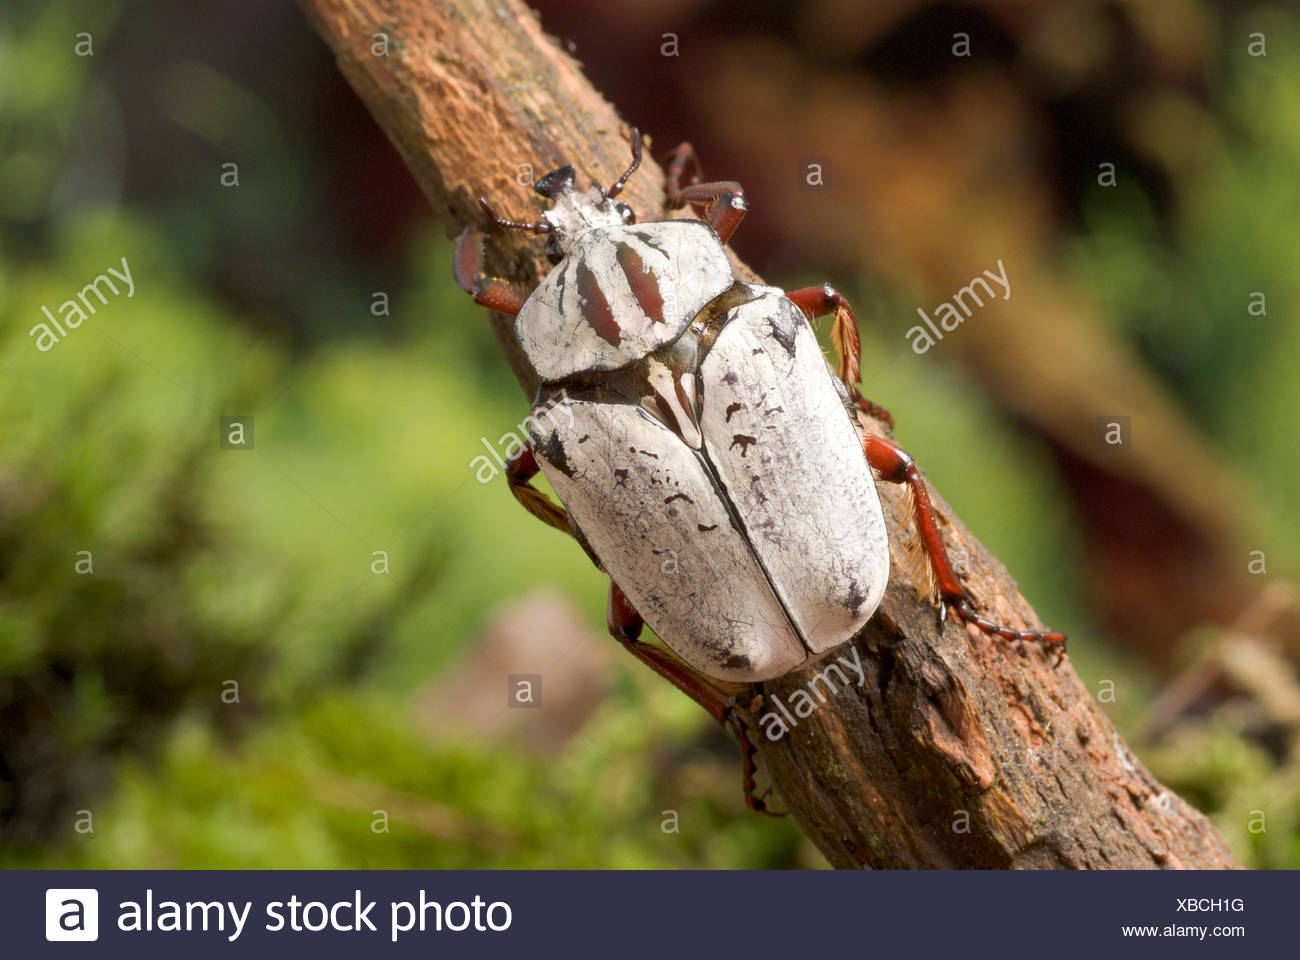 Chafer (Argyrophegges kolbei), on a twig - Stock Image